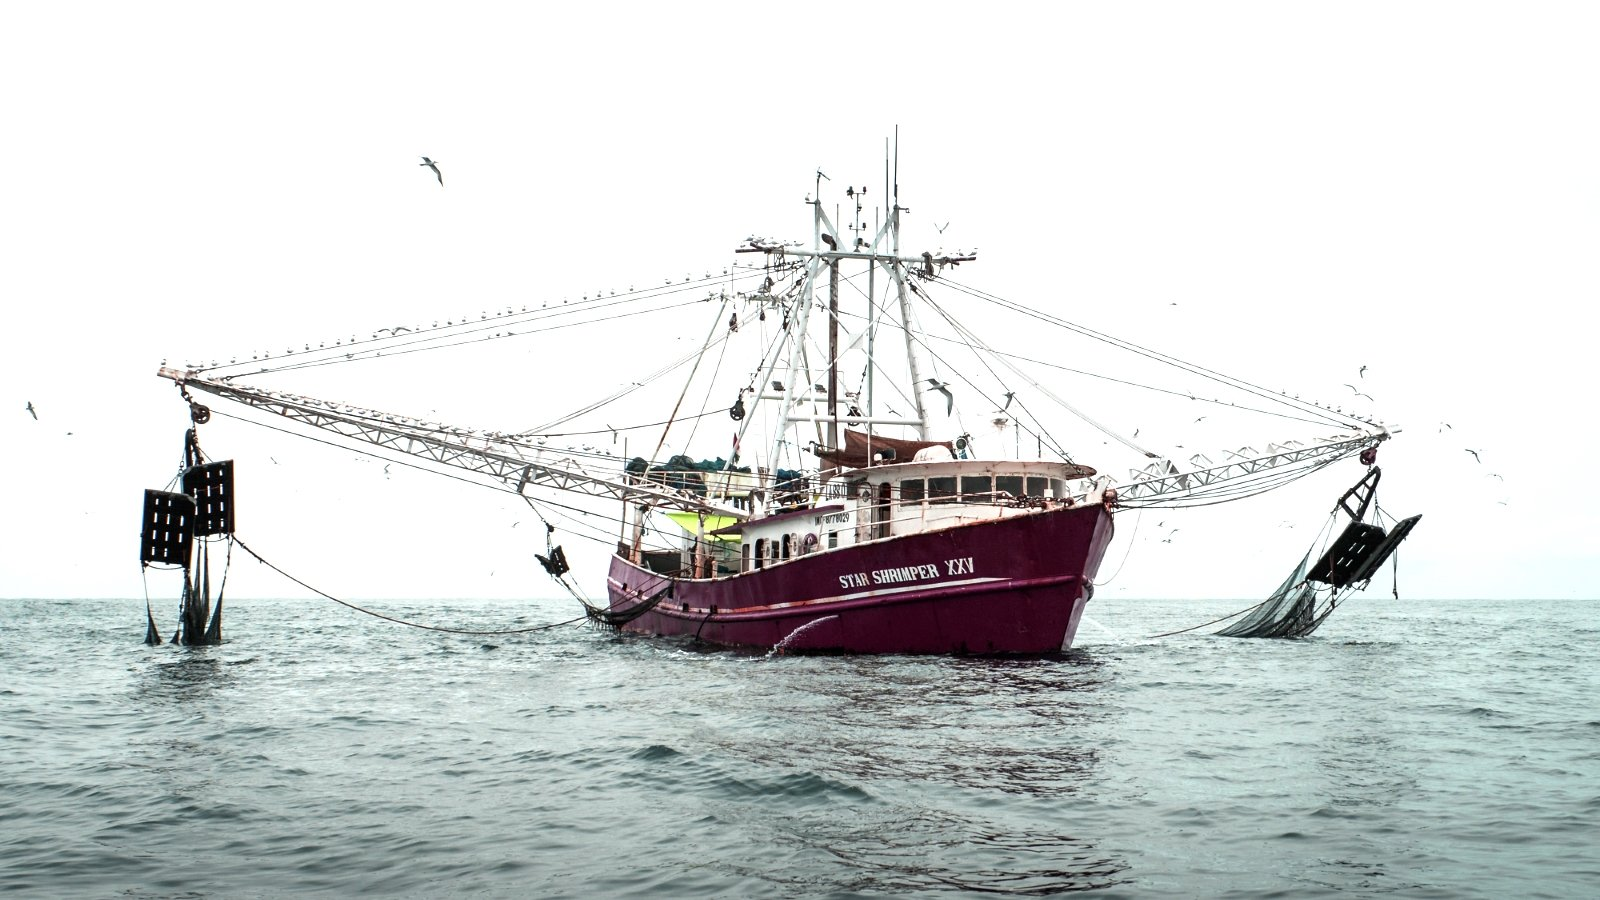 Nigeria Takes Action Against 'Sustainably-Certified' Shrimp Trawler